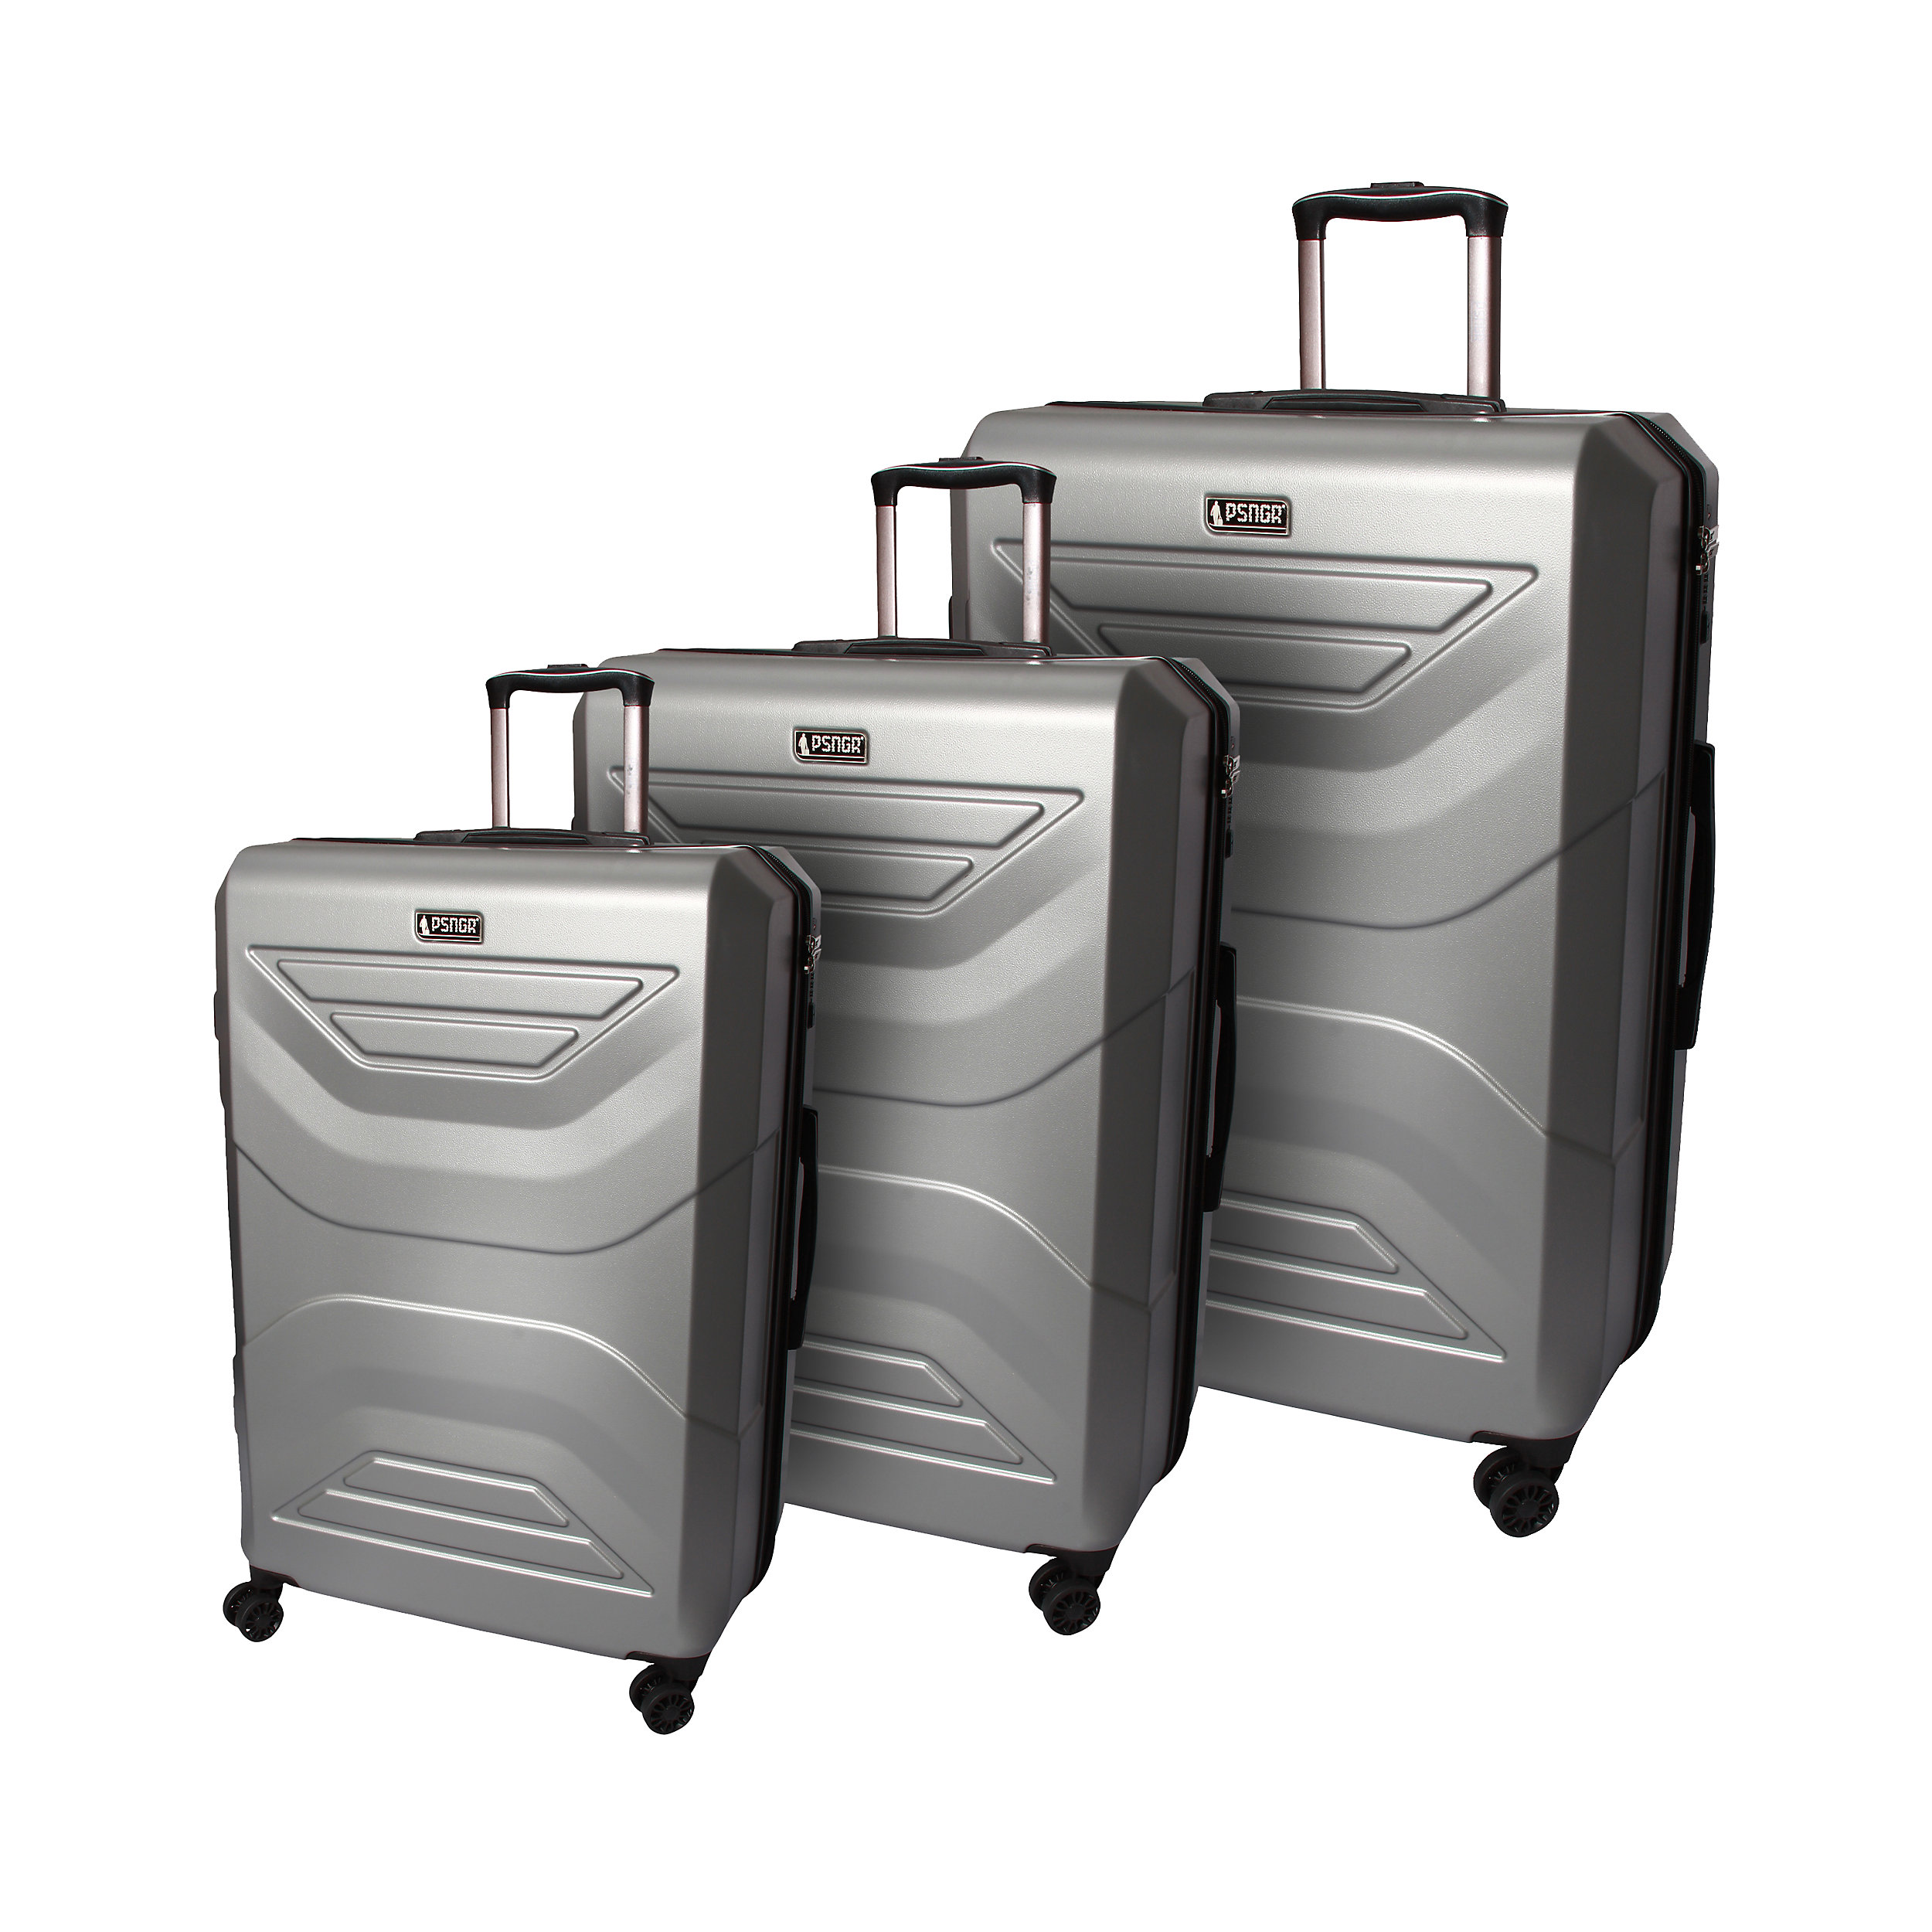 3-part Trolley Set with 4 wheels with 4 wheels 58/69/78 cm EXP Spirit S/M/L 211 Liter